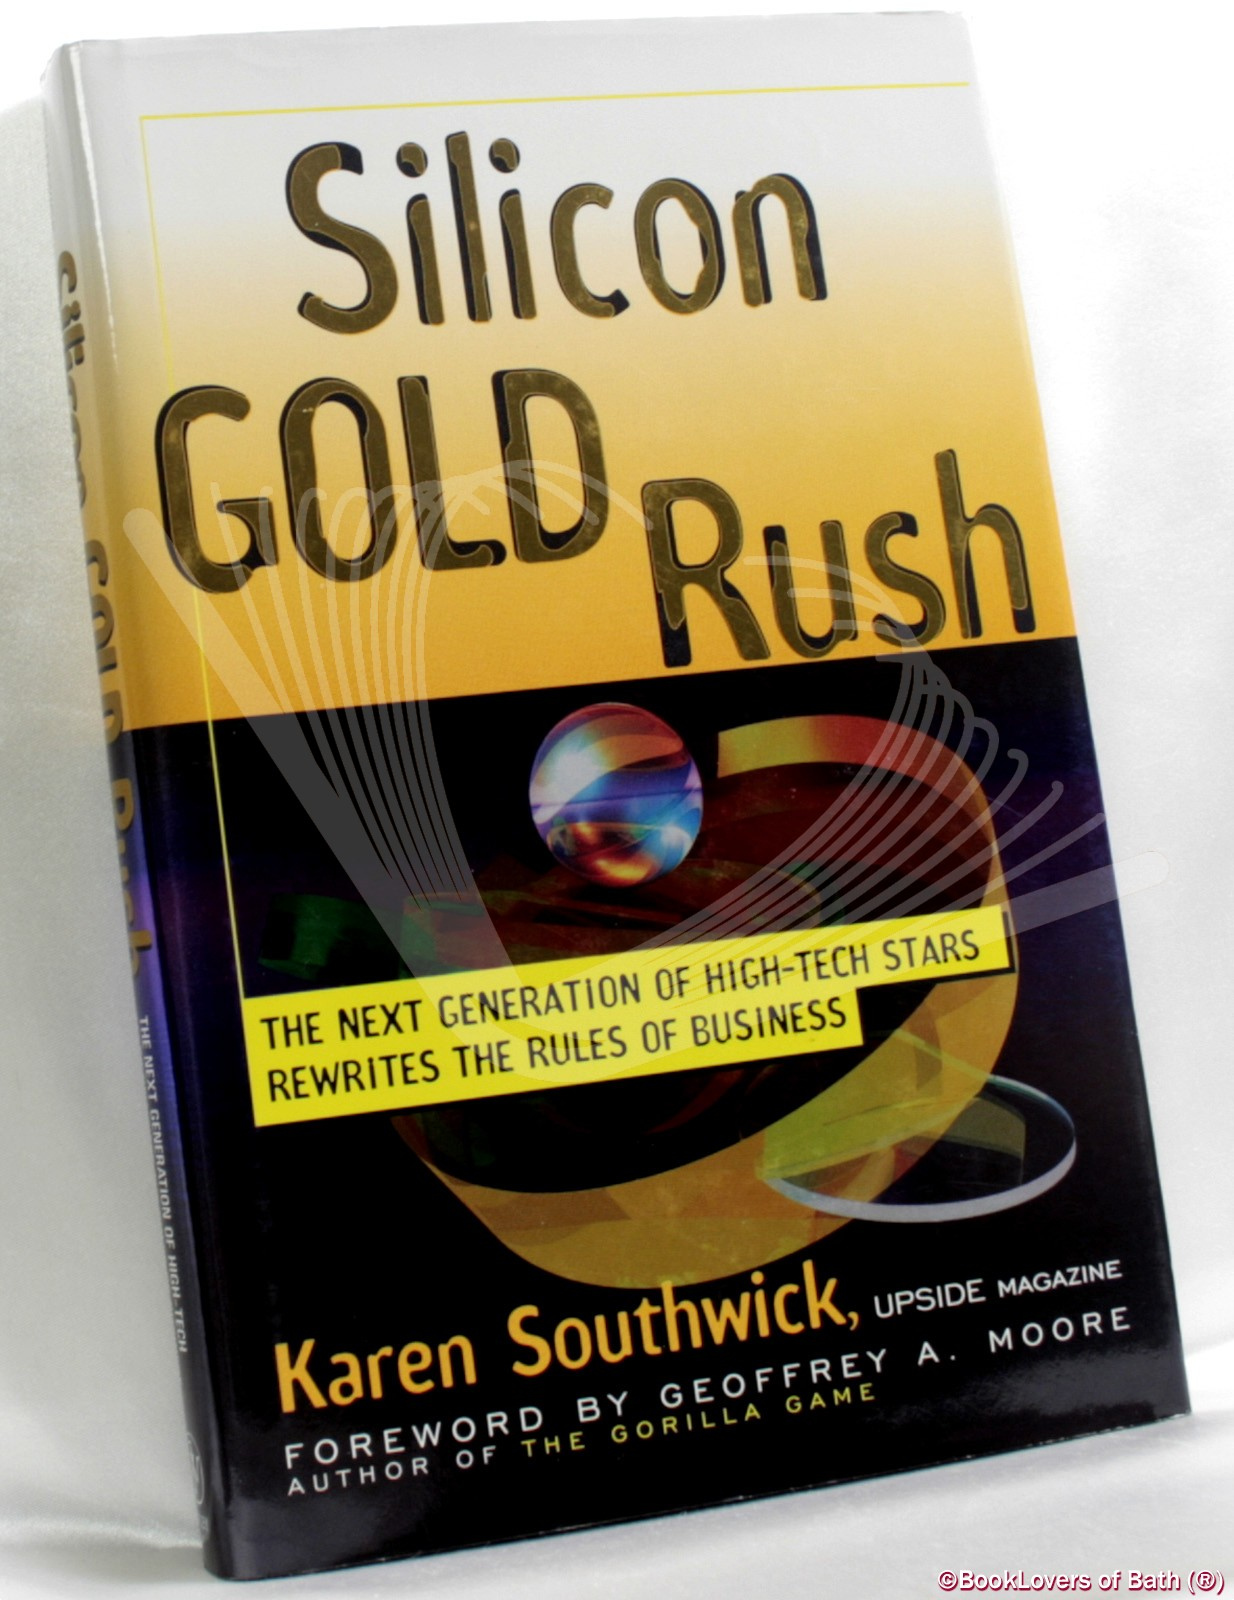 Silicon Gold Rush: The Next Generation of High-tech Stars Rewrites the Rules of Business - Karen Southwick